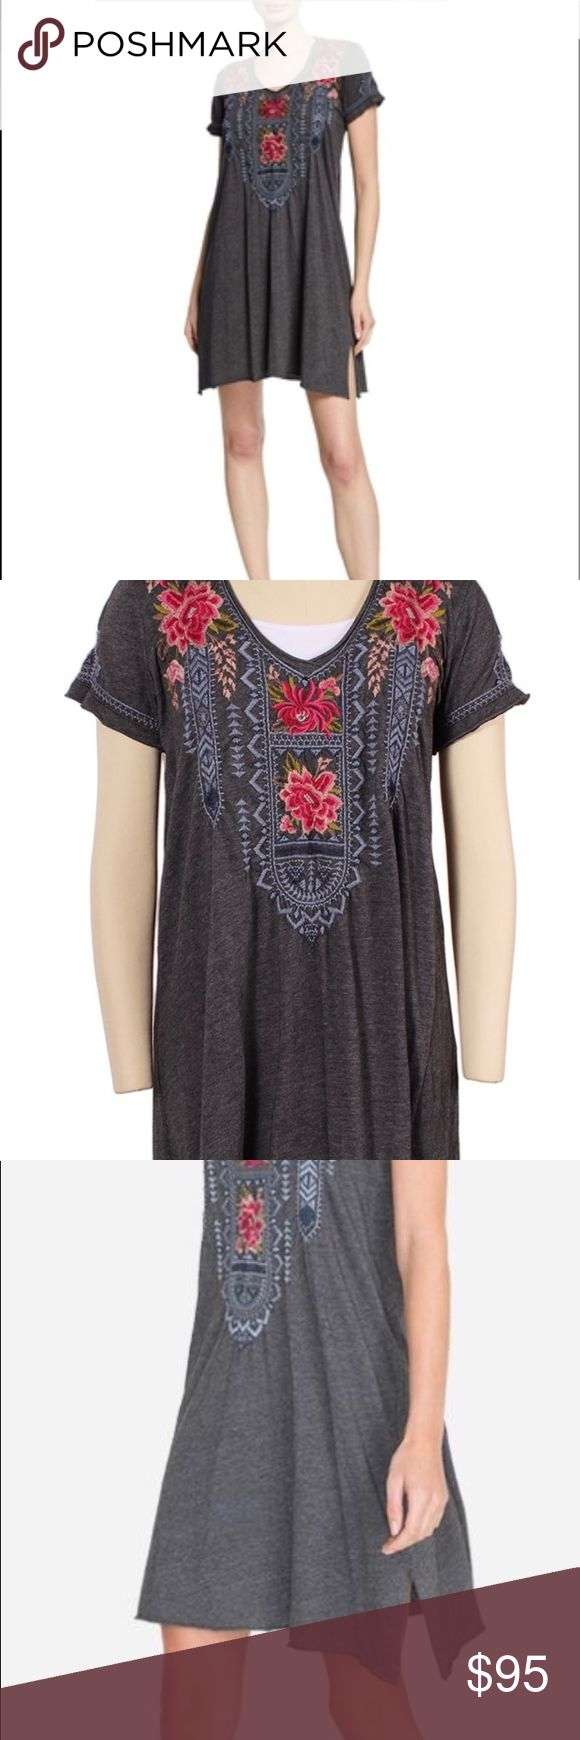 NWT JOHNNY WAS DRAPED EMBROIDERED DRESS - 1X Johnny Was